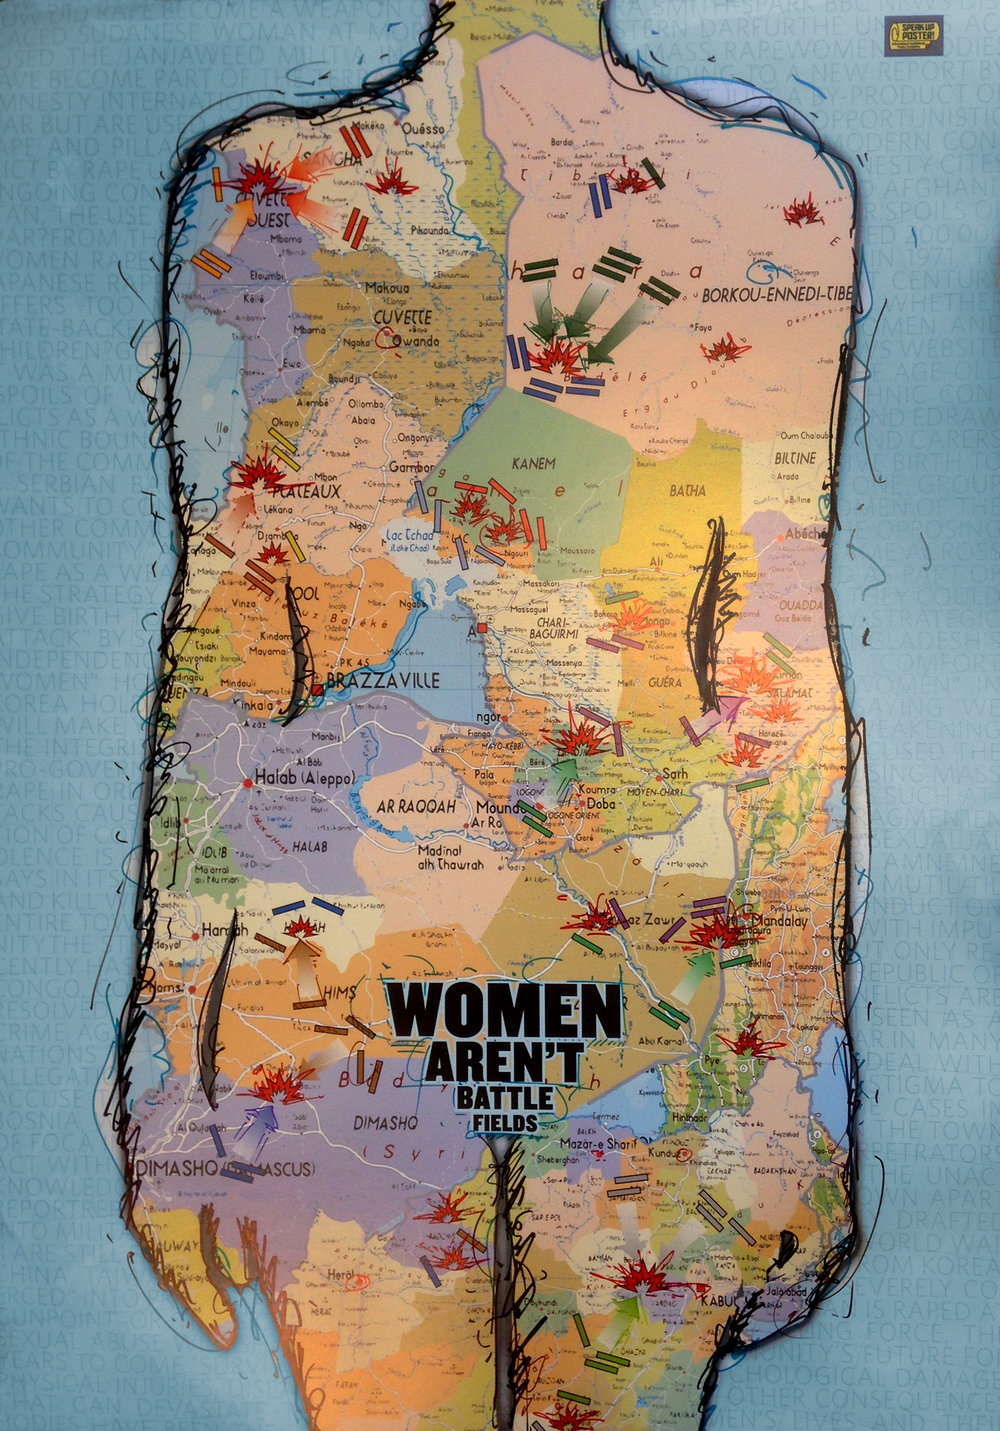 Women aren't battlefields is a poster designed for an invitational exhibition focused on social issues